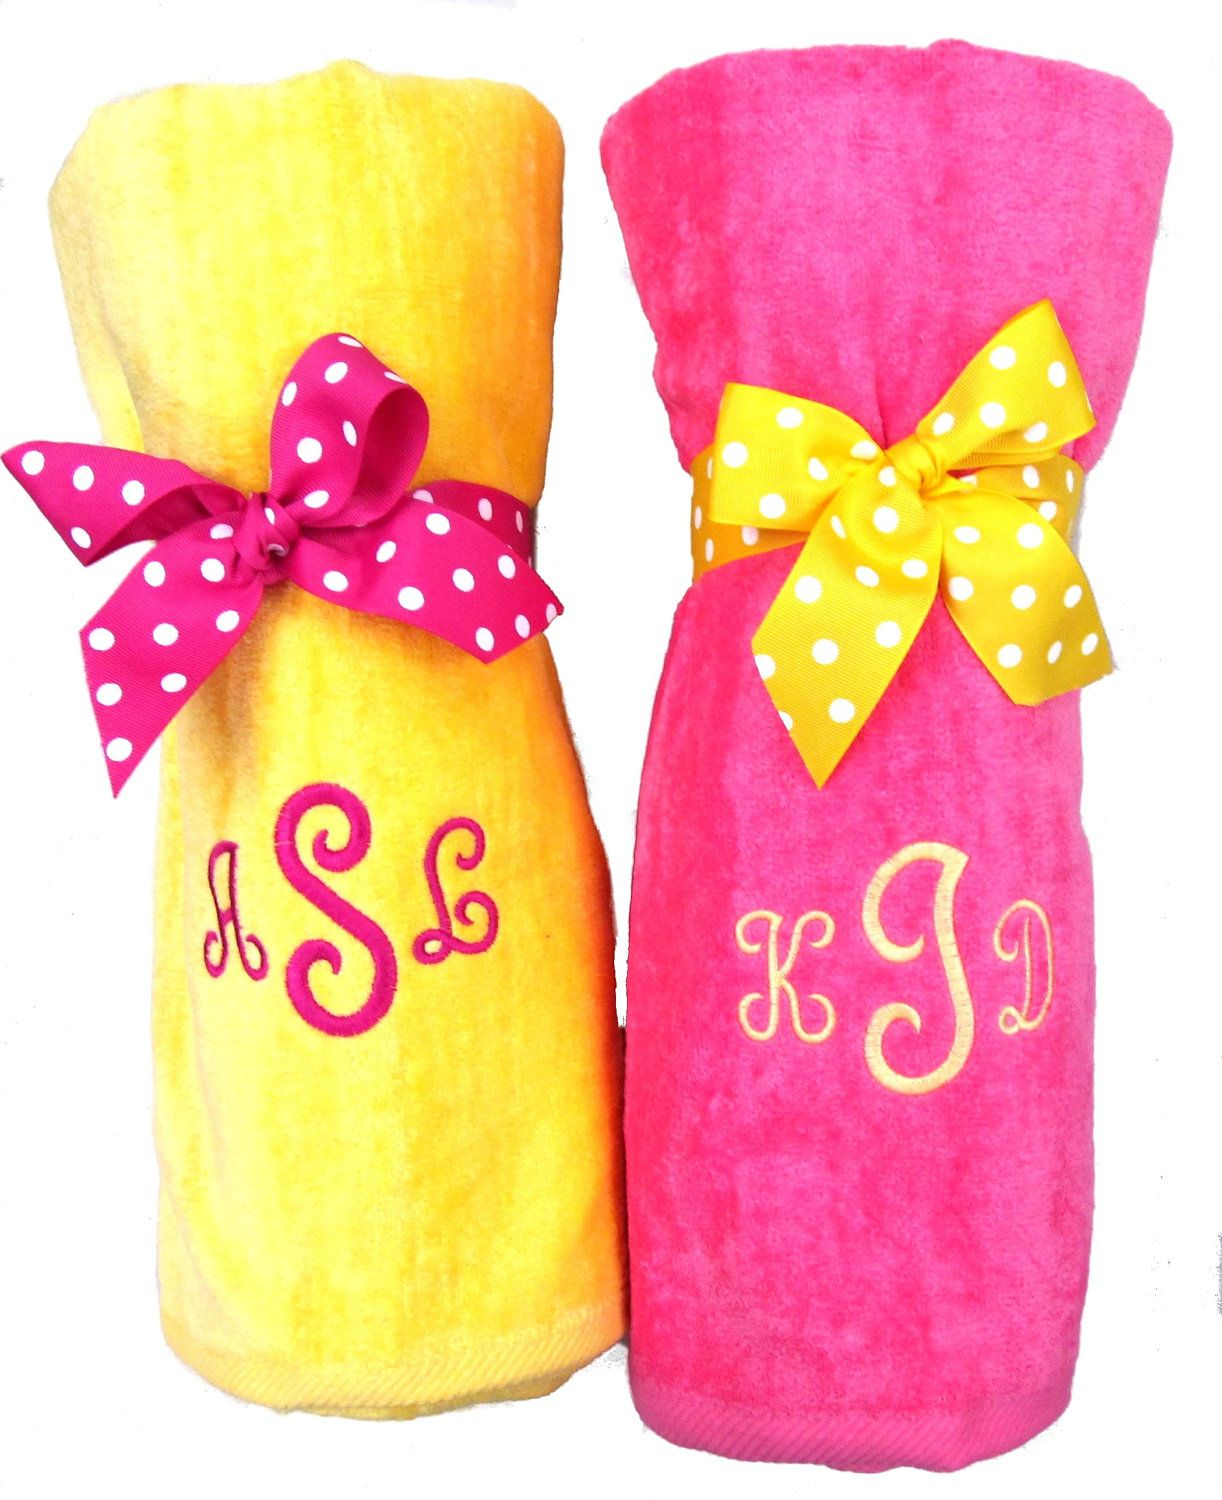 Personalized Towels: Monogrammed Beach Towels For Bridesmaids